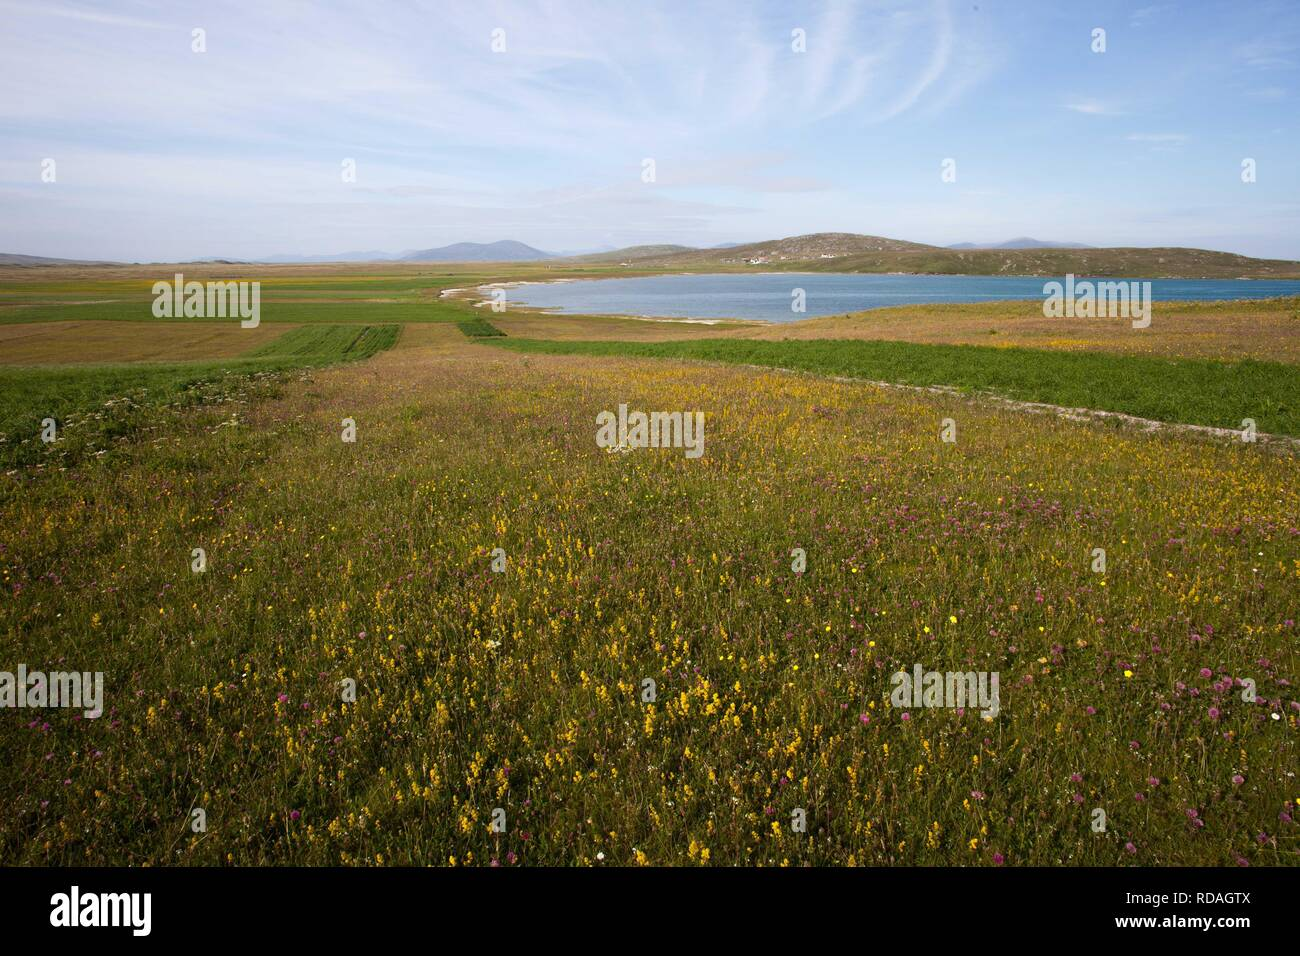 Stips of cultivated machir with black oats and strips of uncultivated machir,rich in wild flowers , biodiverse farming lands cape ,rich historical and wildlife landscape - Stock Image